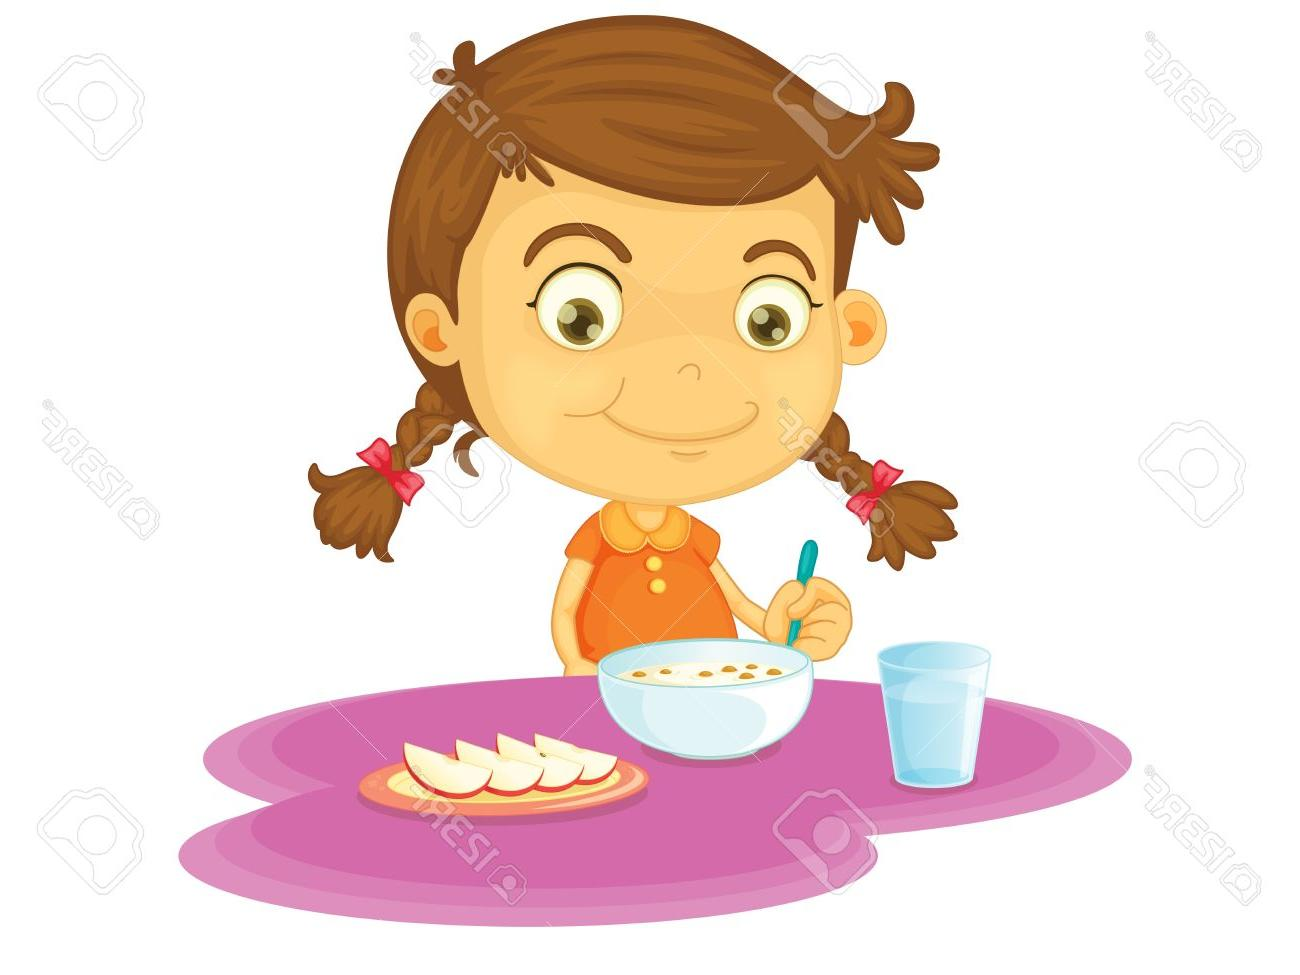 Eating breakfast clipart 9 » Clipart Station.